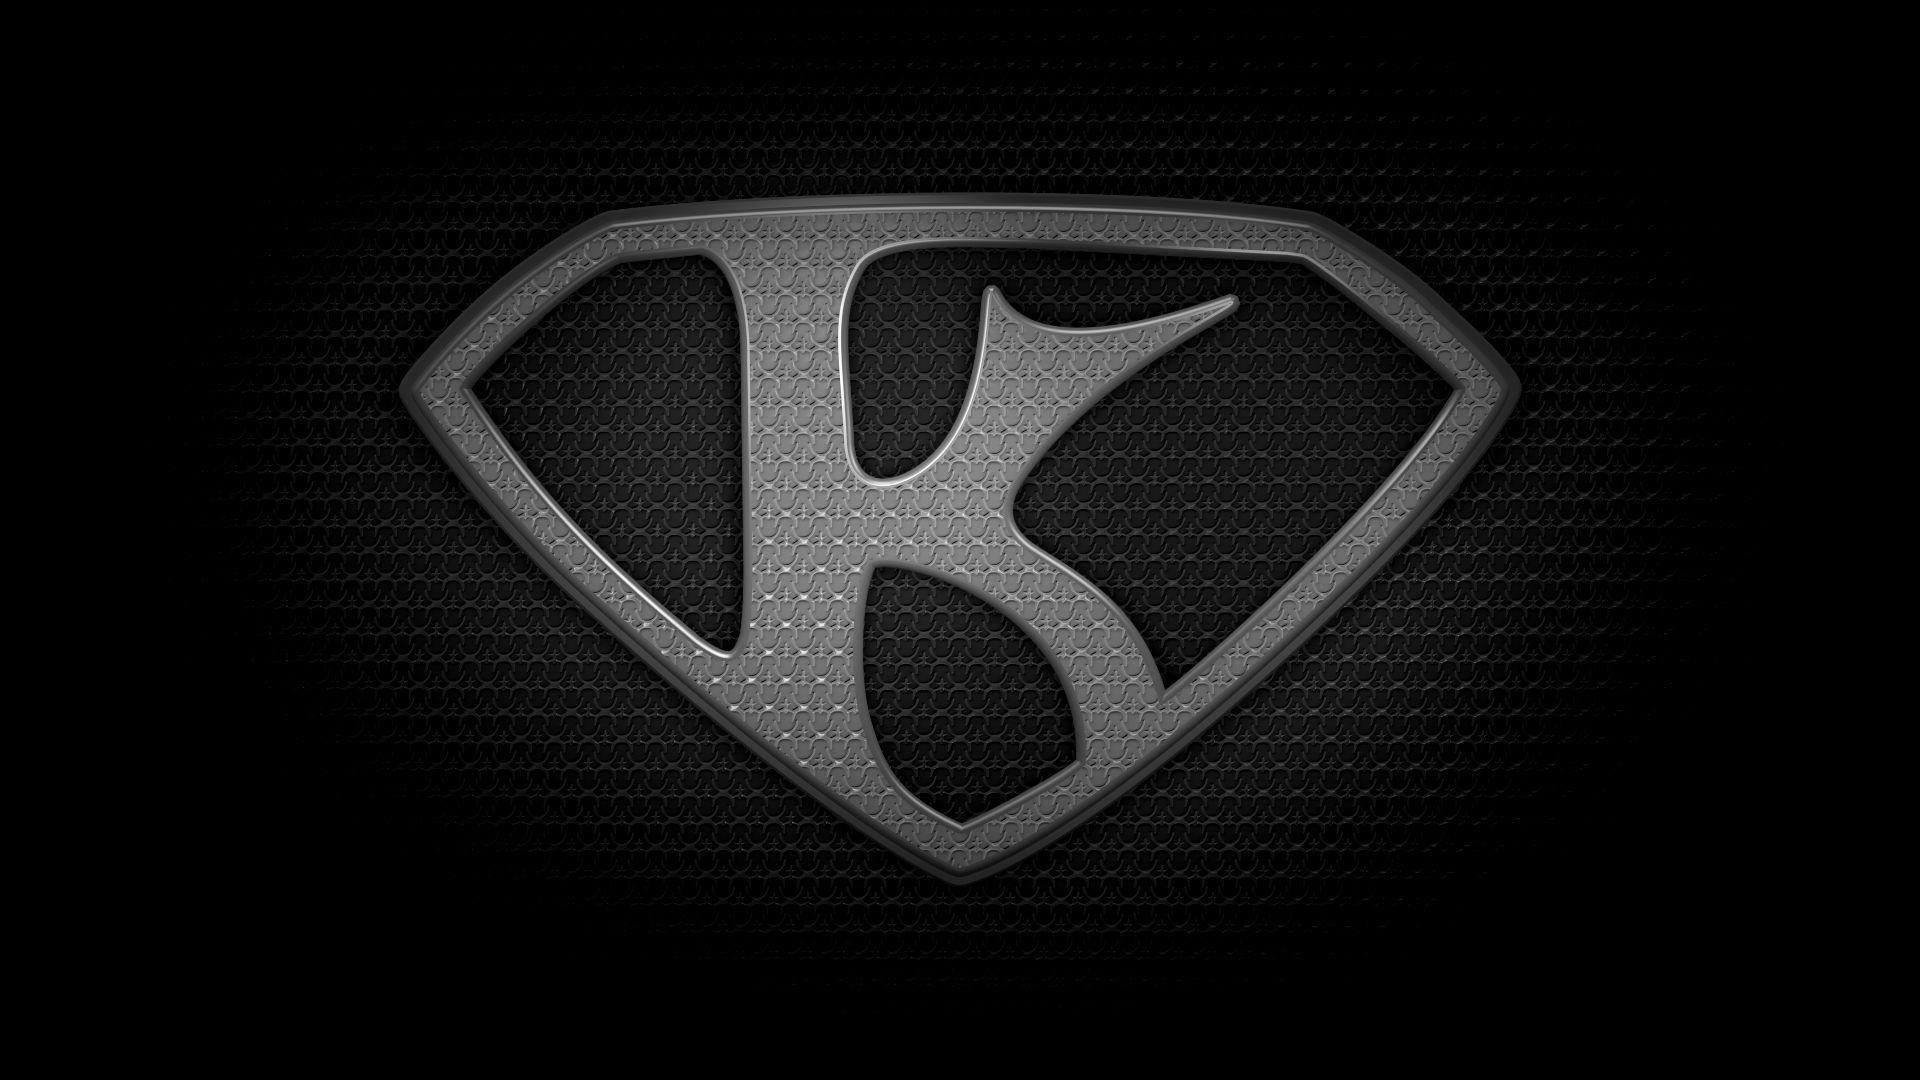 Superman Hd Iphone Wallpaper Letter K Wallpapers 41 Images